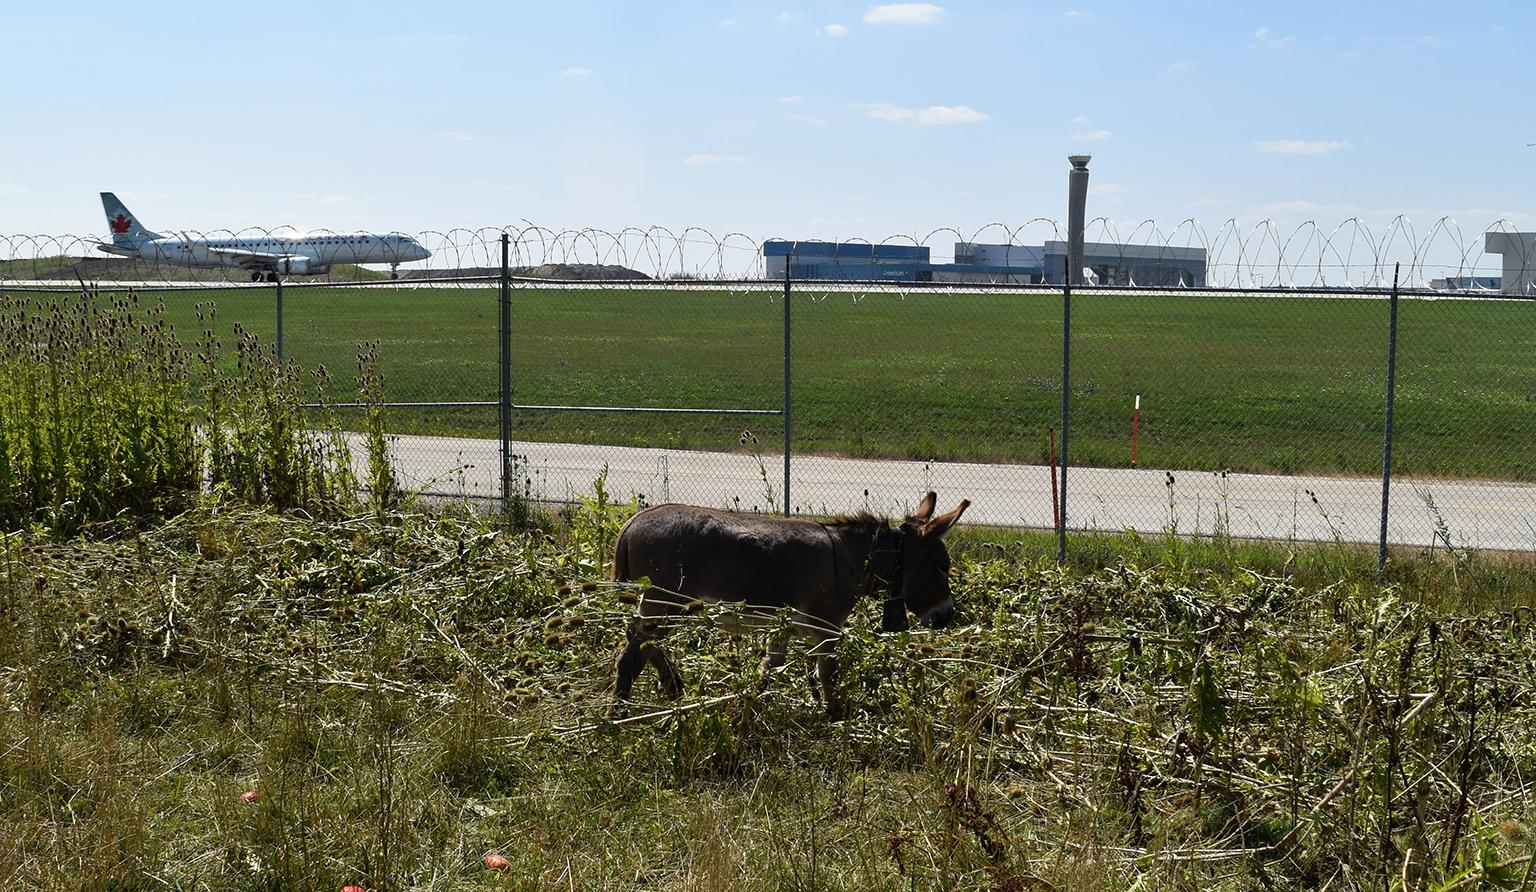 A donkey roams on land to the west of the O'Hare airfield. (Courtesy Chicago Department of Aviation)